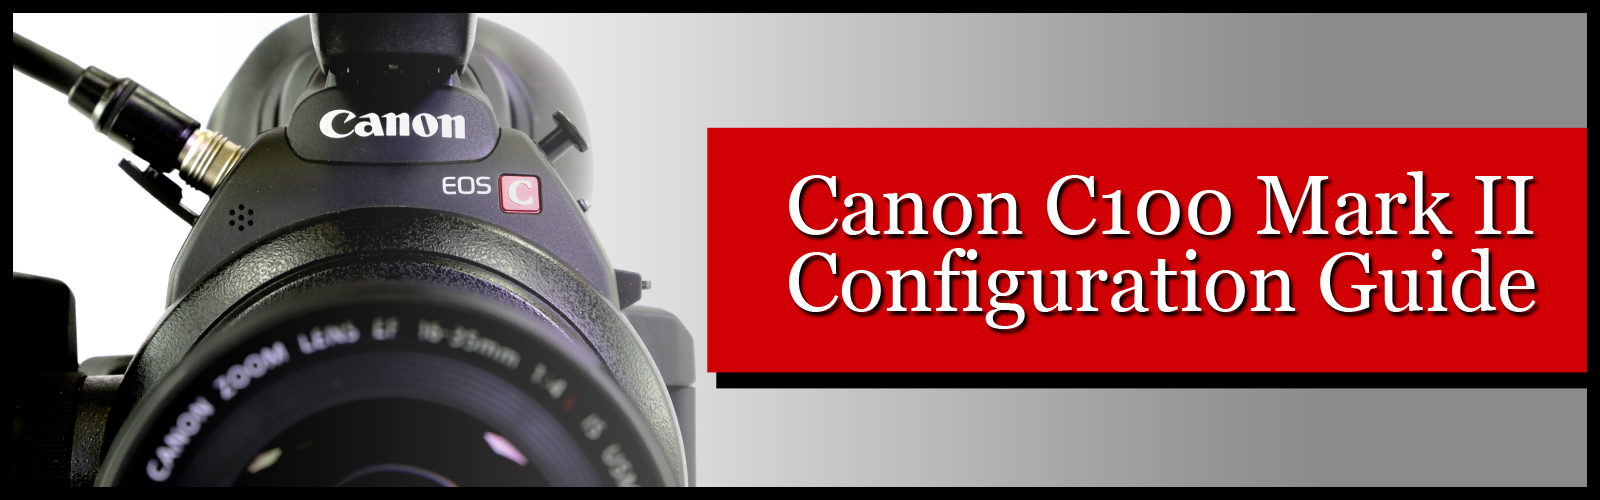 Canon C100 Mark II Configuration Guide